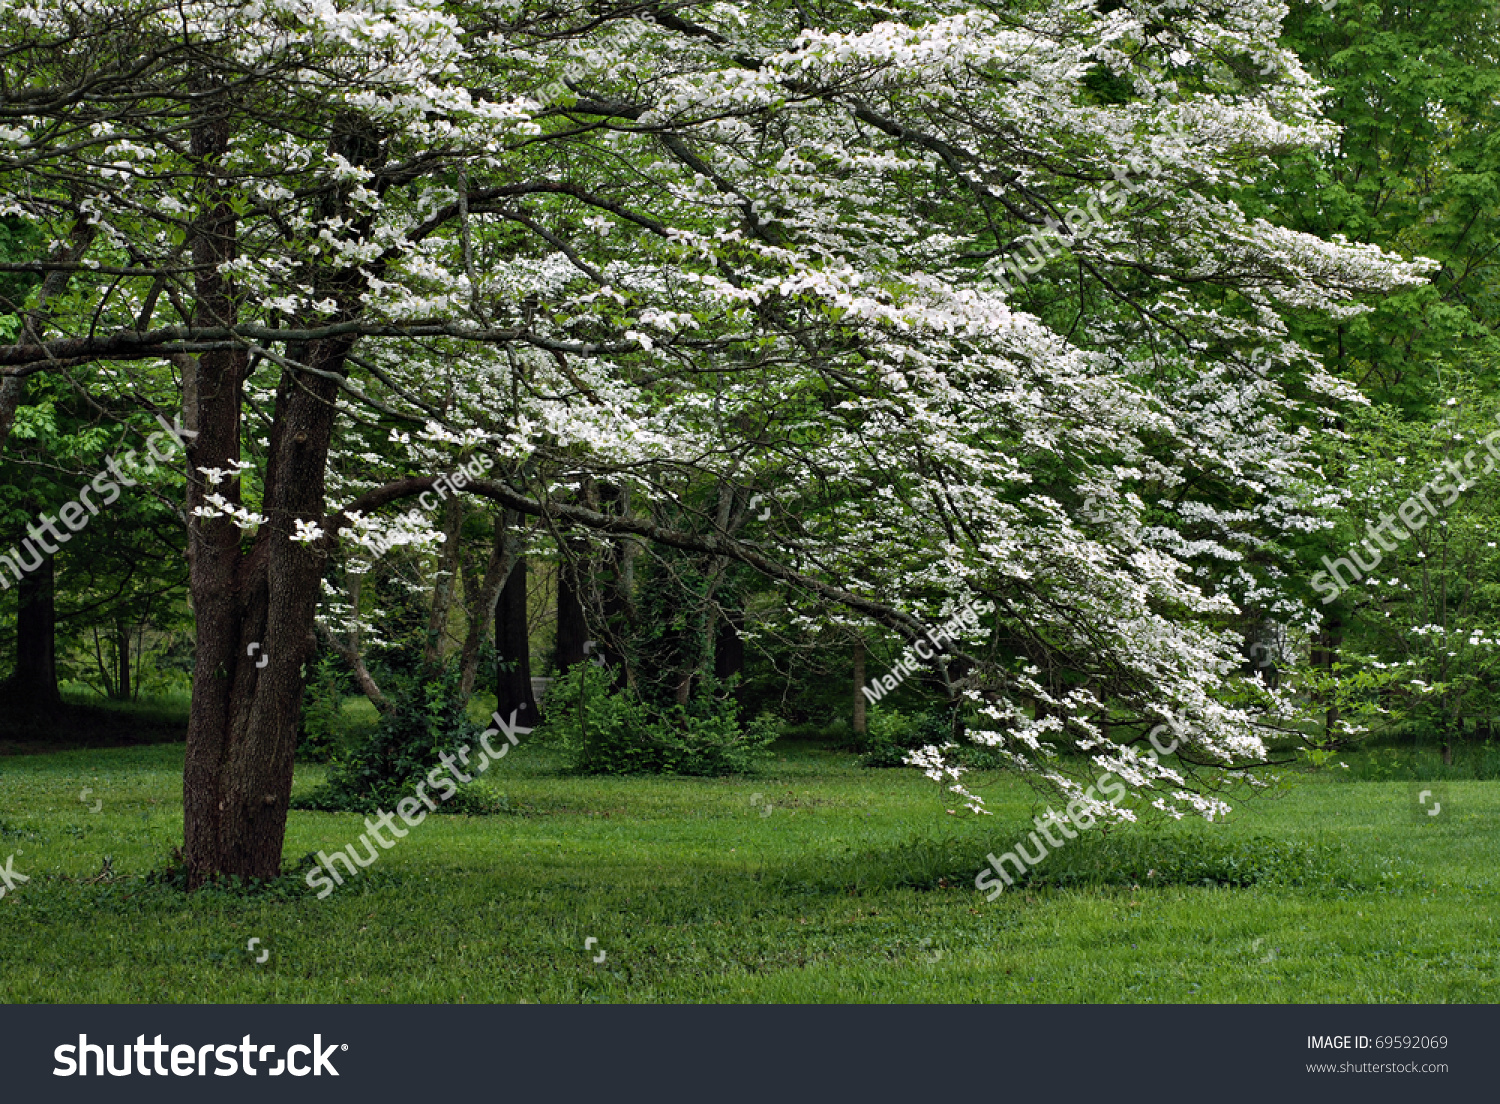 Mature White Flowering Dogwood Tree Full Stock Photo 69592069 ...